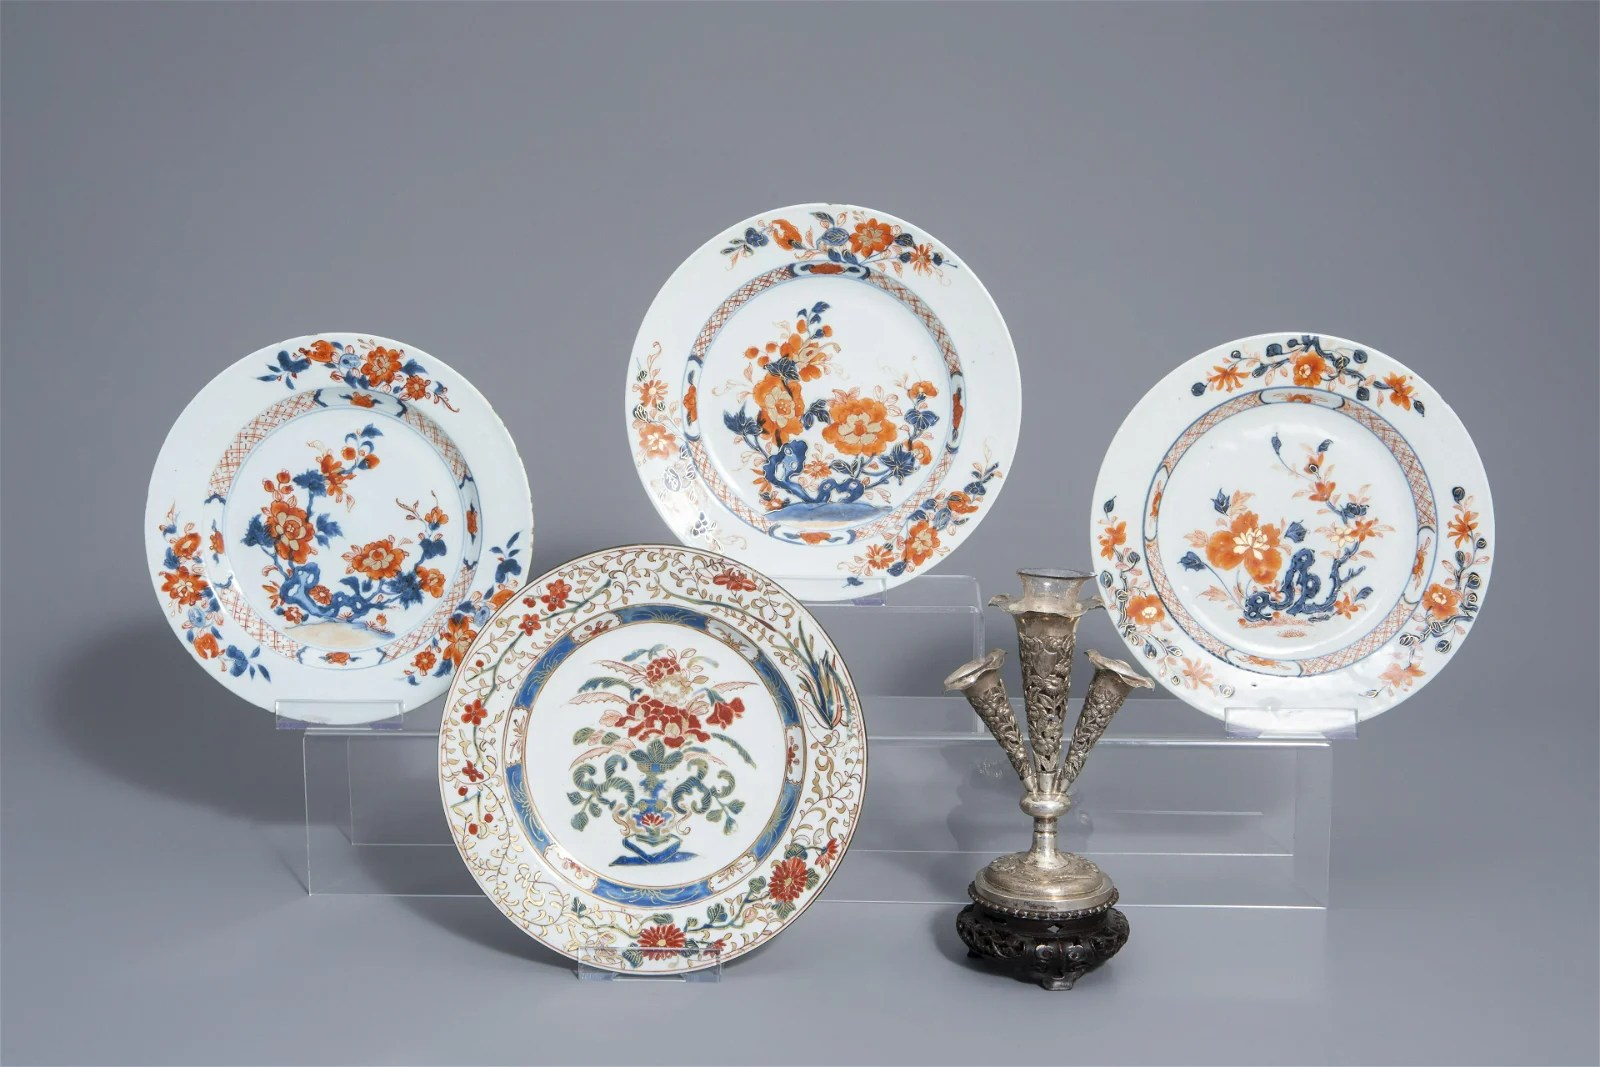 Four Chinese Imari style and famille rose plates and a